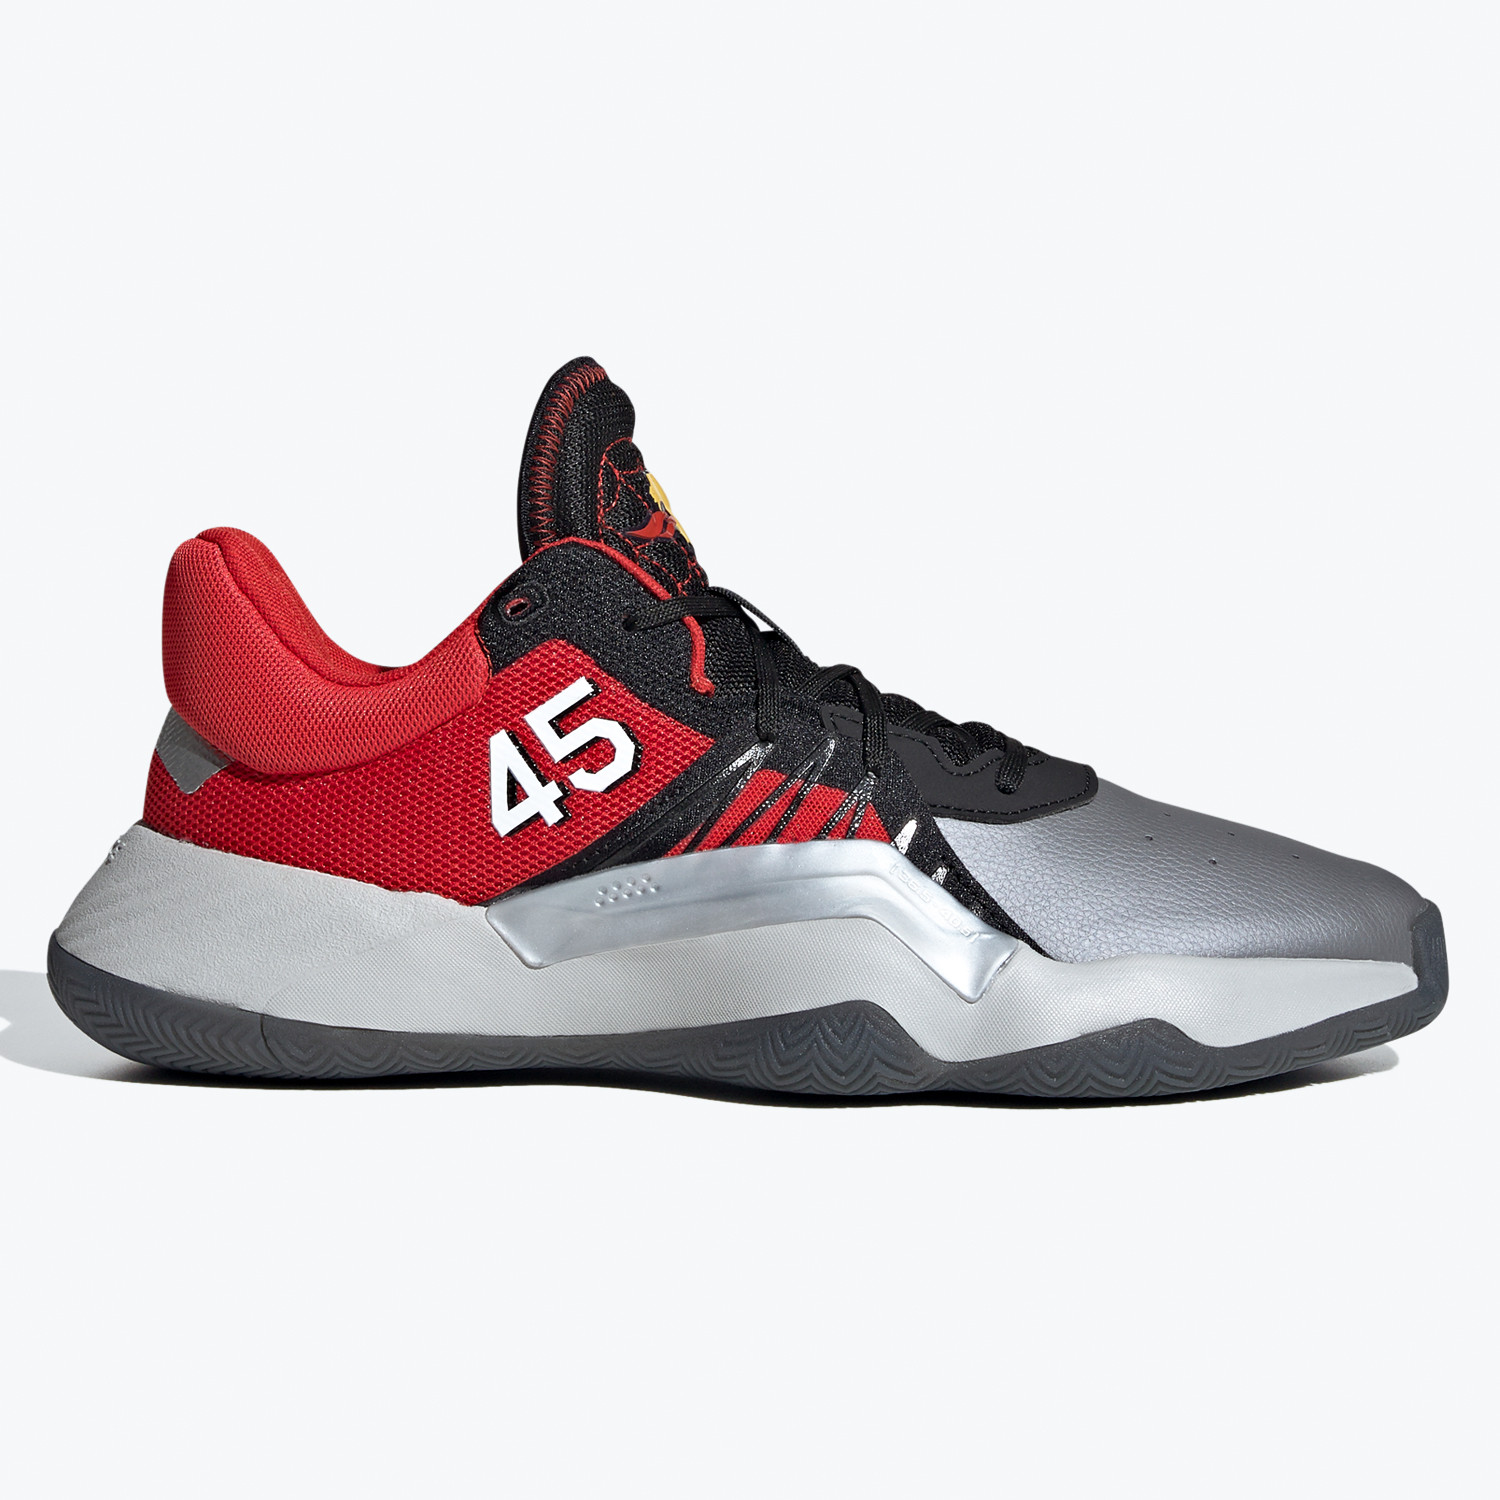 Adidas D.o.n. Issue 1 Men's Shoes (9000044773_43331)